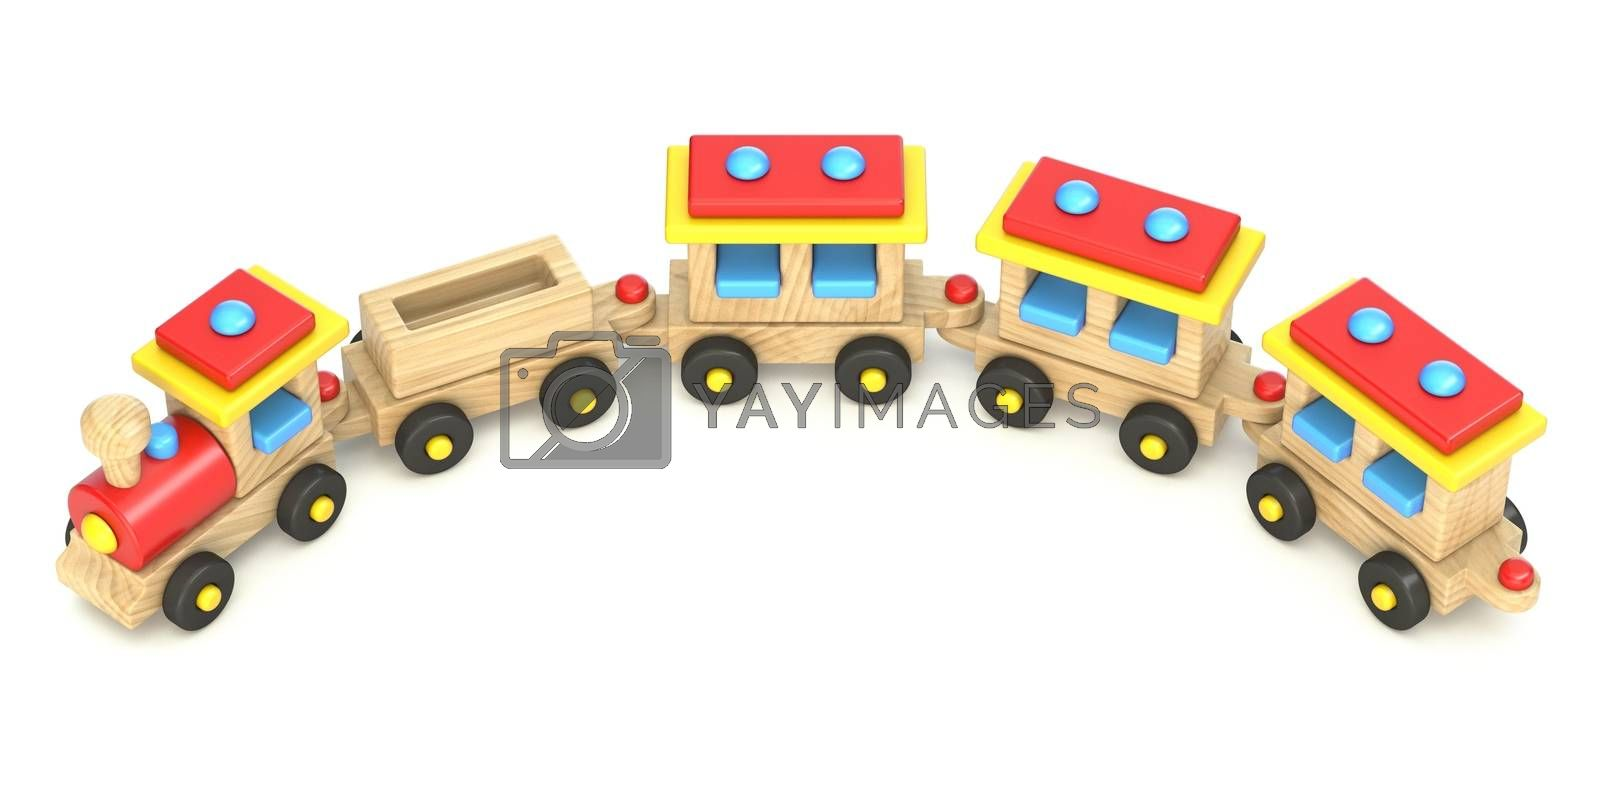 Wooden train 3D render illustration isolated on white background